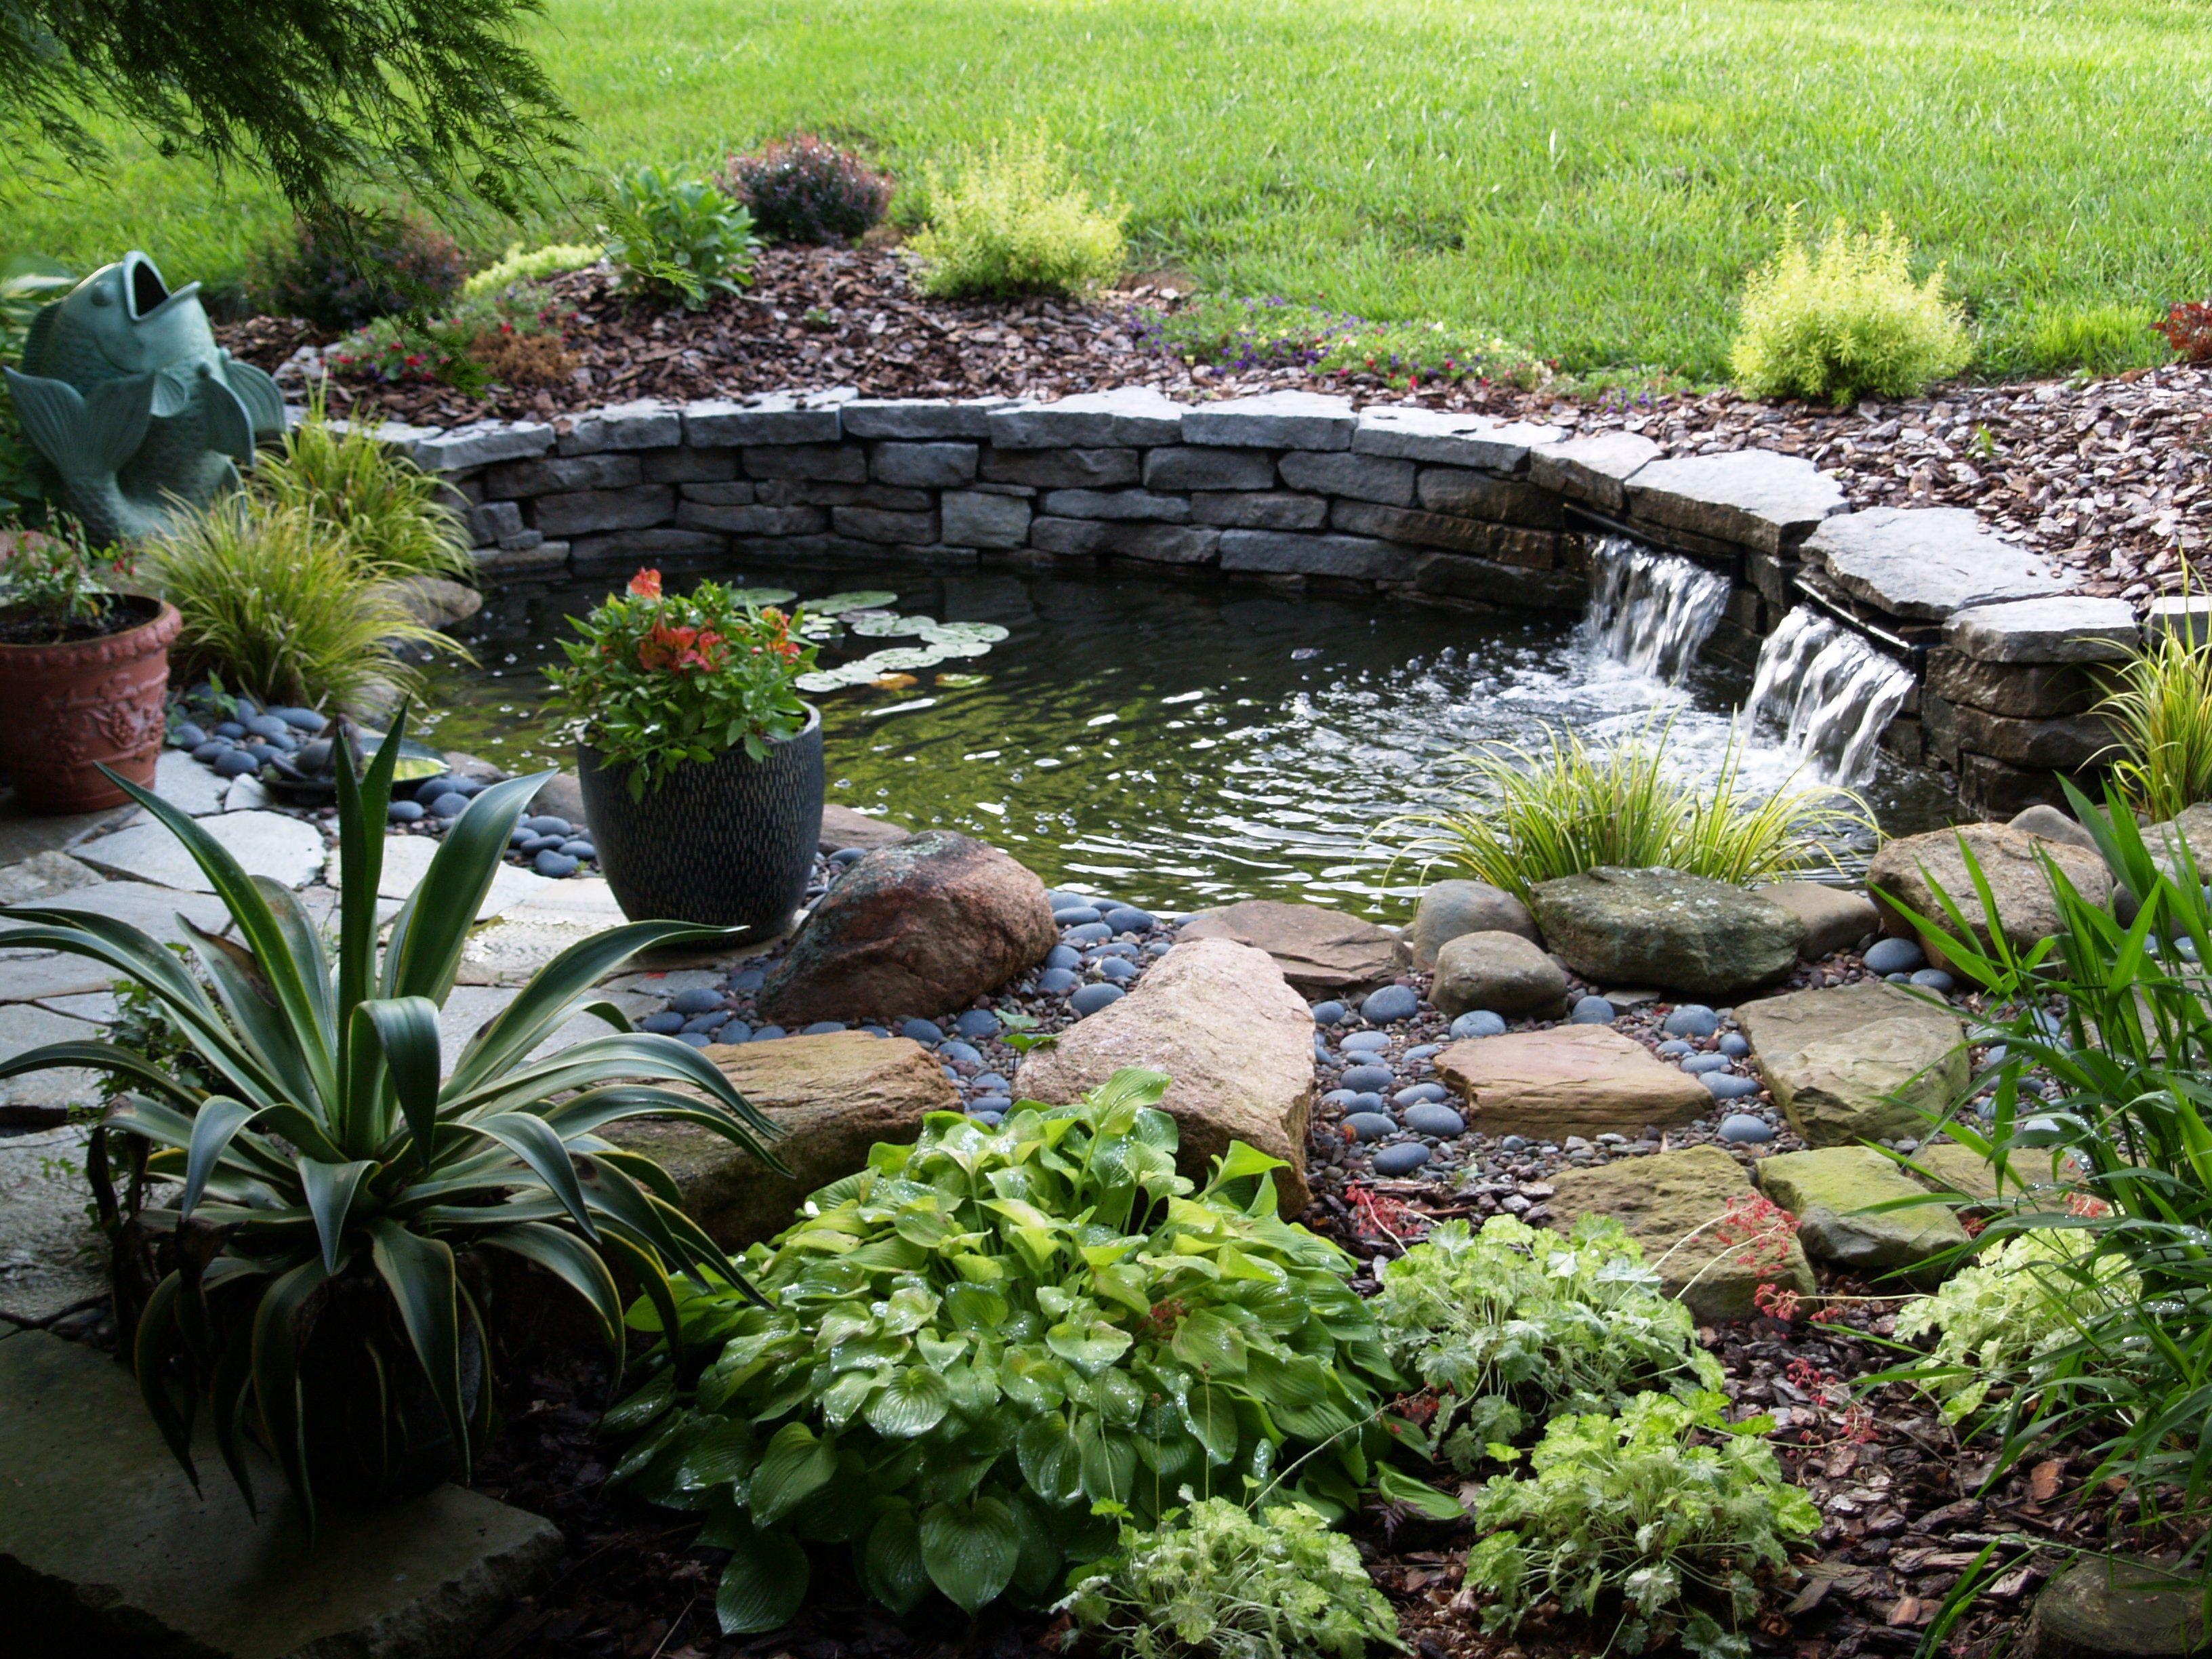 Small Backyard Pond Designs koi pond designs ideas pond builders pond construction pond ideas backyard ponds koi pond design design Pictures Of Ponds In Gardens Google Search